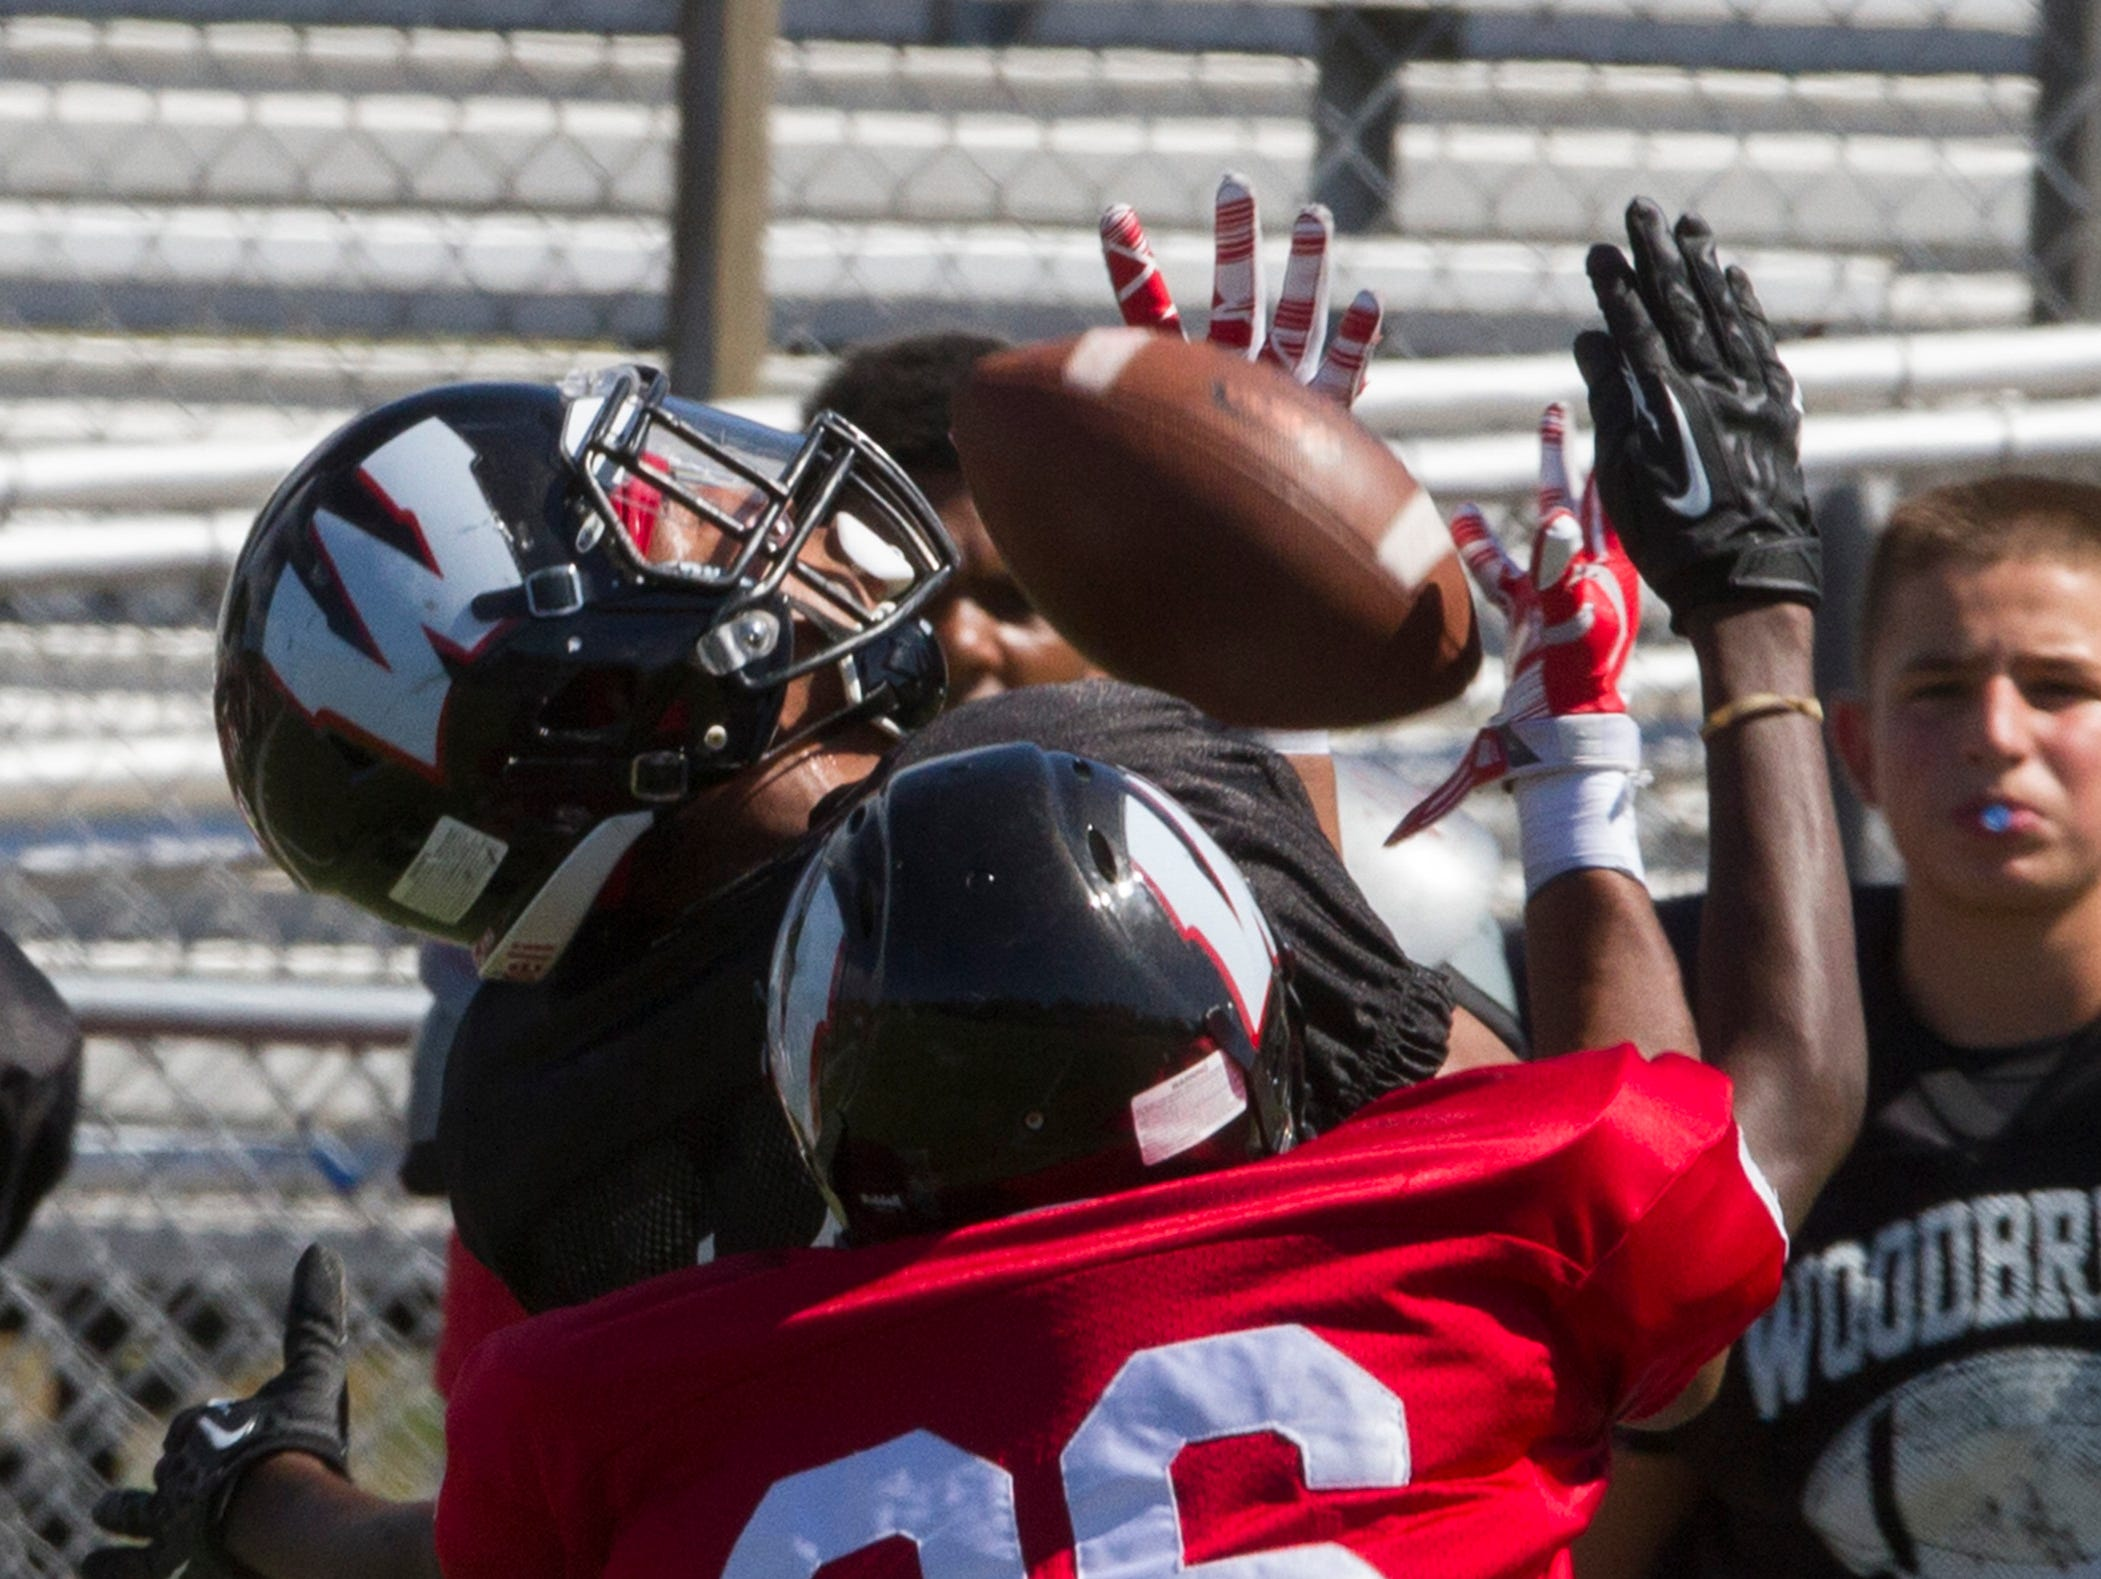 The black team's Quaasim Glover pulls in a long pass down the sideline as he's covered by red team's Dawud Lebron during the Black and Red Scrimmage at Woodbridge High School Footballin Woodbridge, NJ on August 22, 2015.